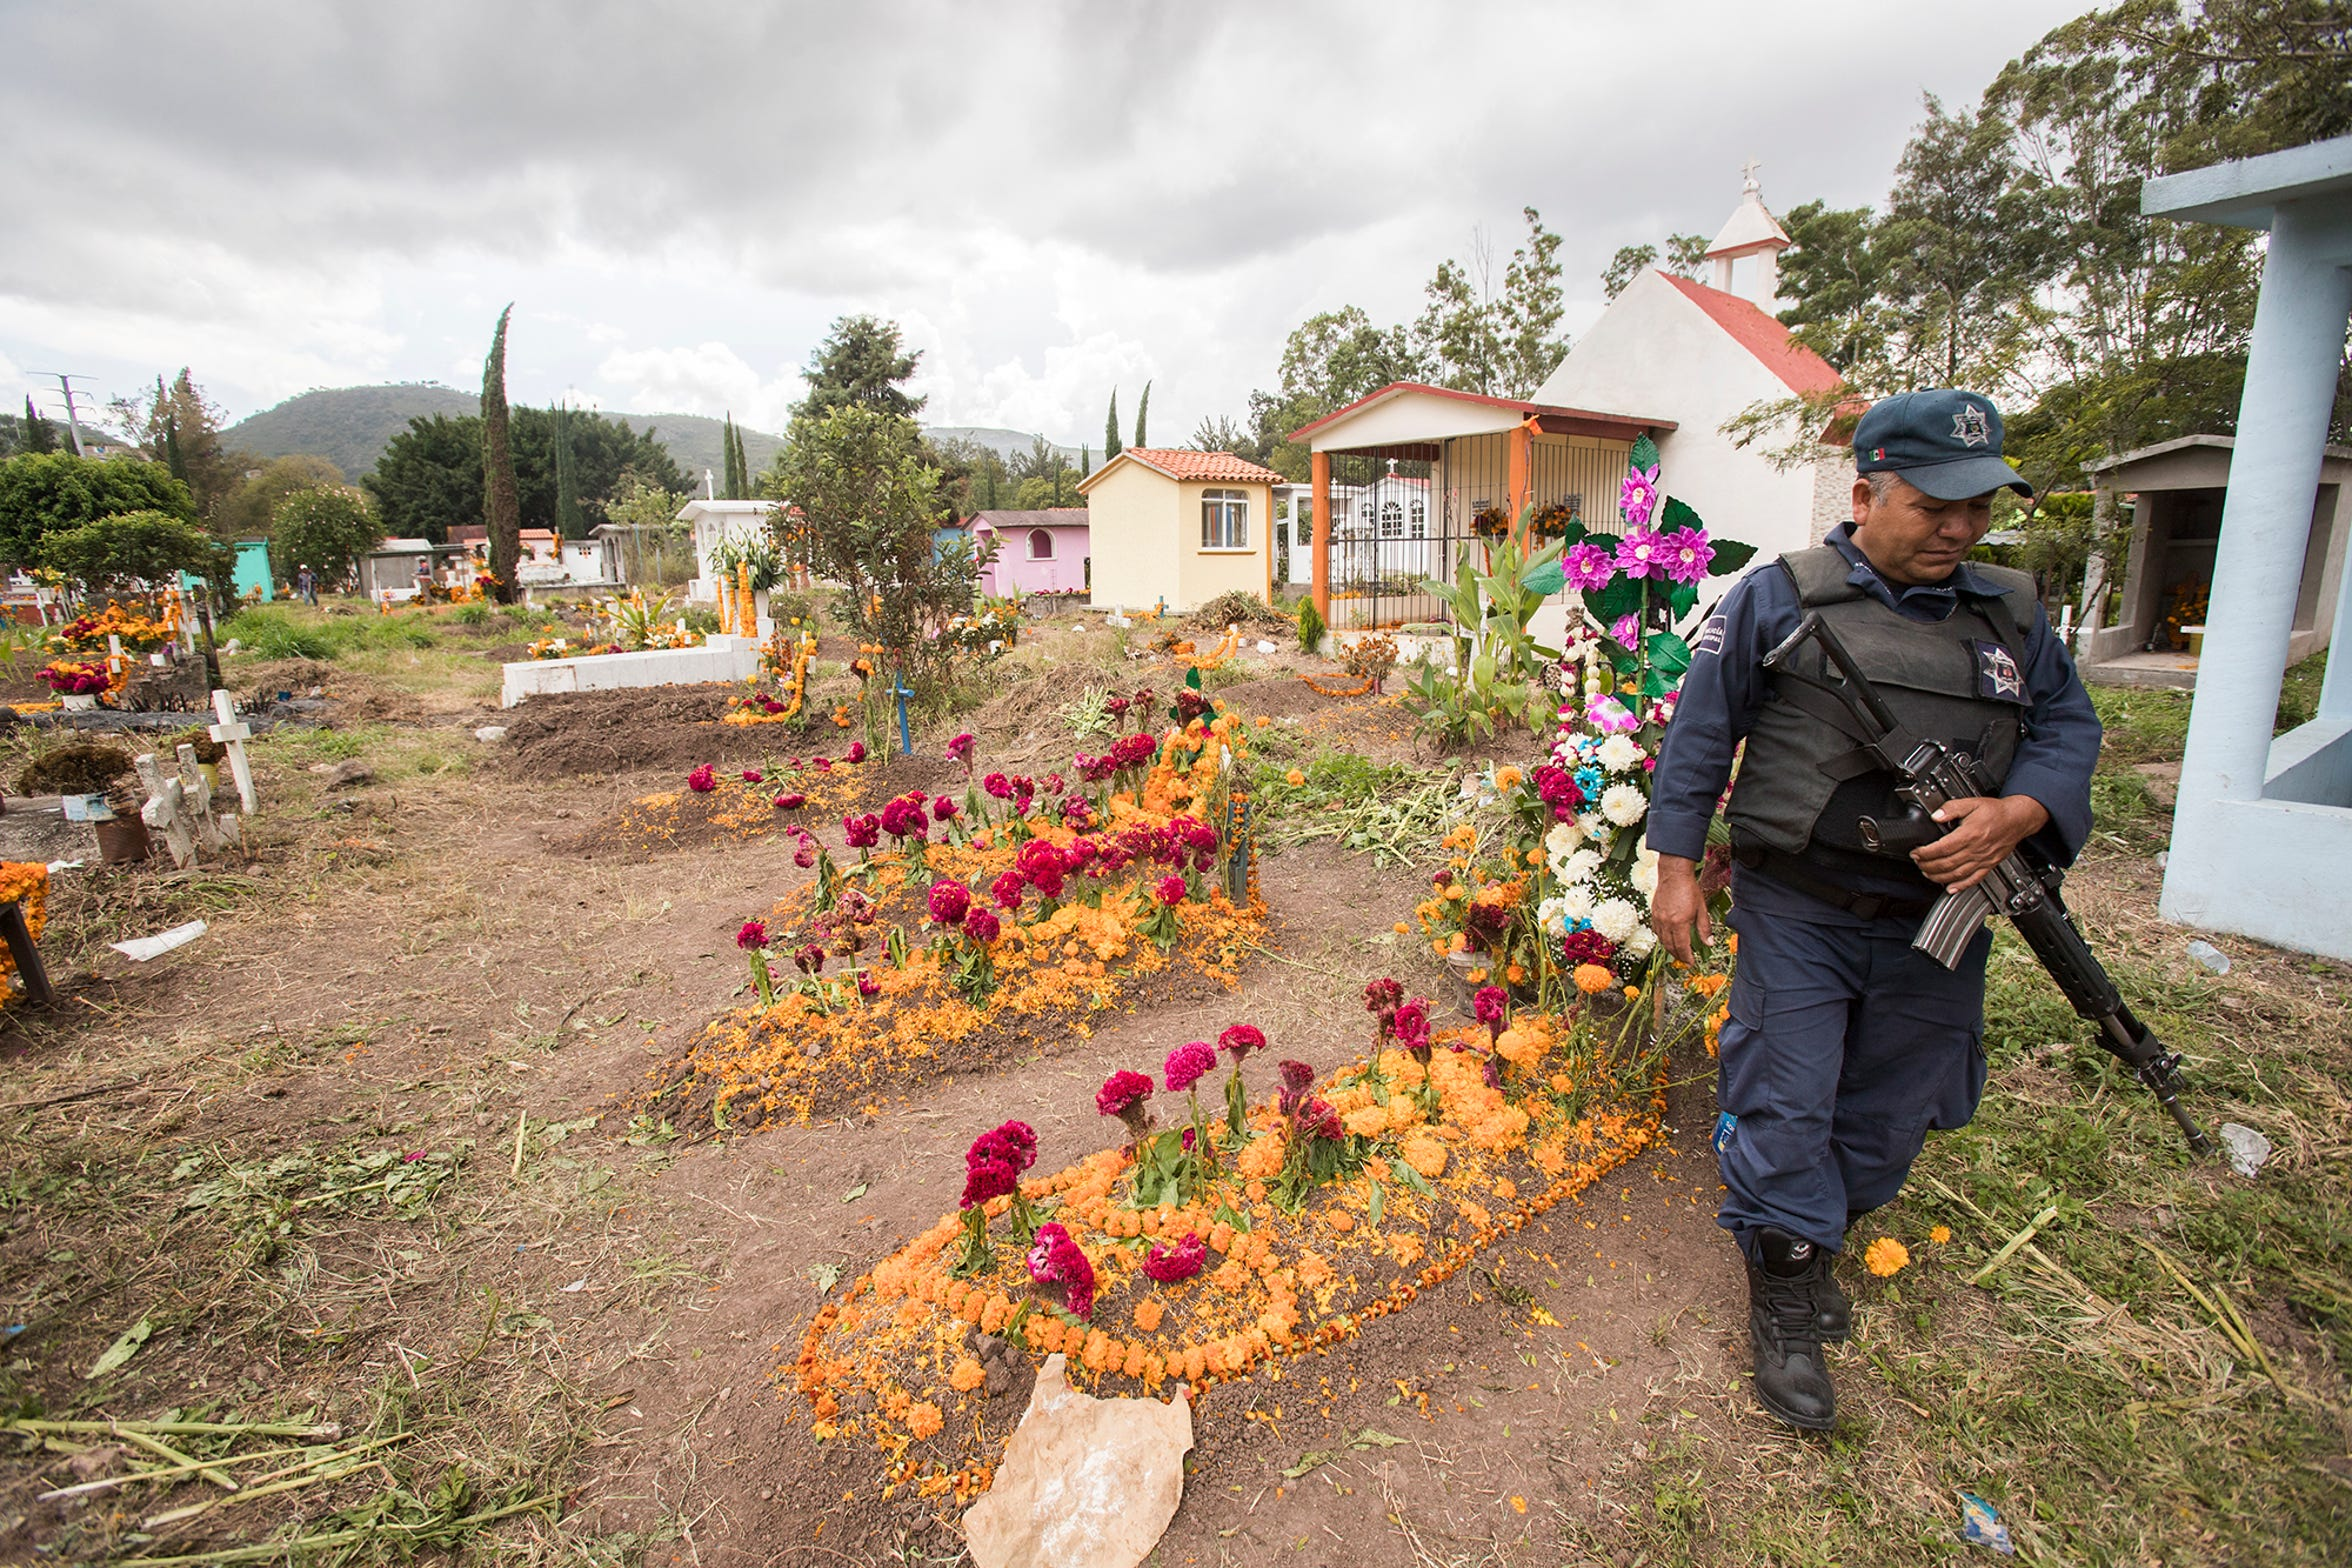 Chilapa has one of the highest homicide rates in the country. The police patrol the municipal cemetery on Day of the Dead.